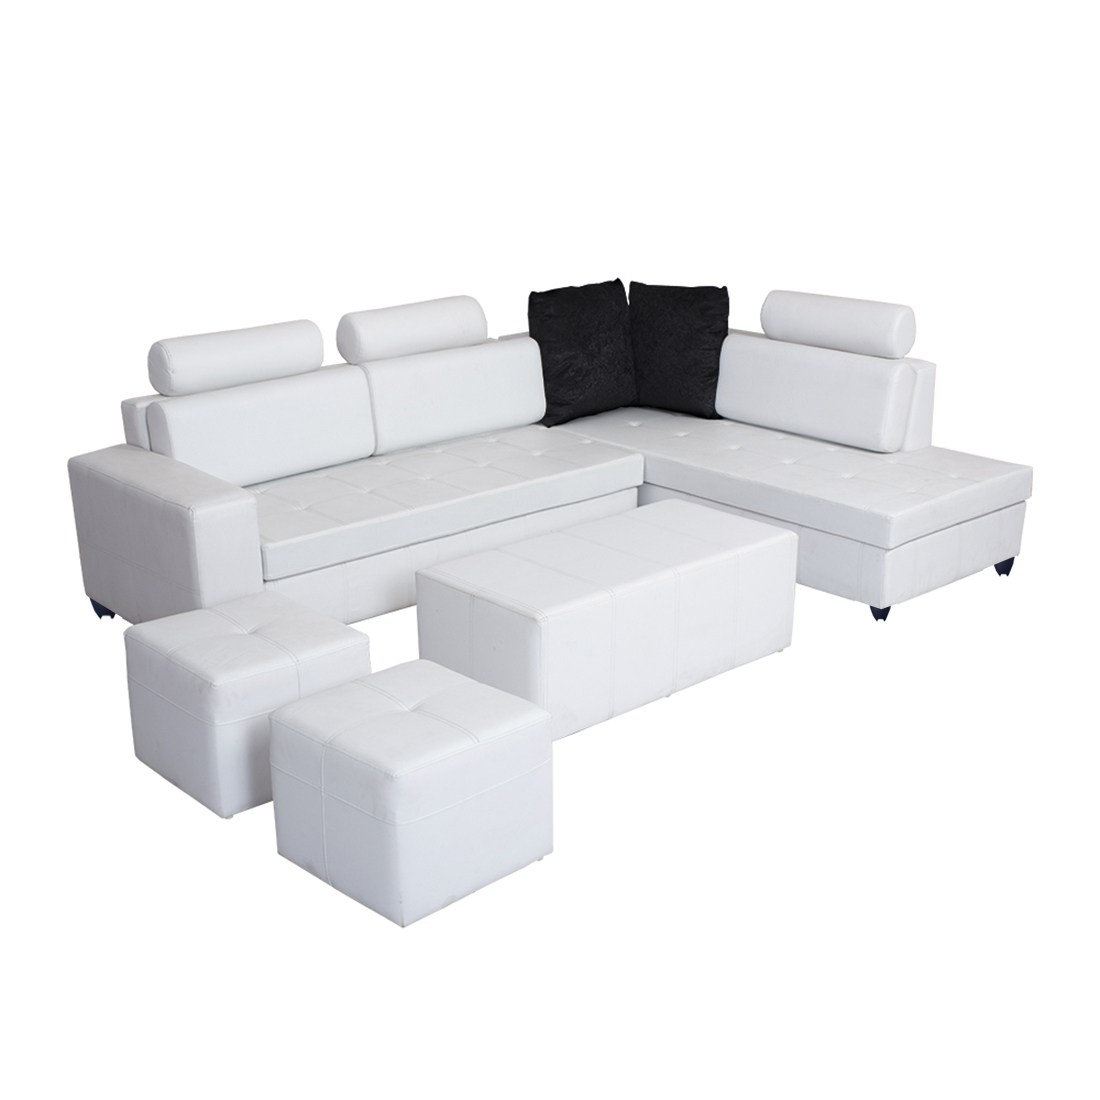 Admirable Bharat Lifestyle Orchid Leatherette Sectional Sofa Set Finish Color White Machost Co Dining Chair Design Ideas Machostcouk